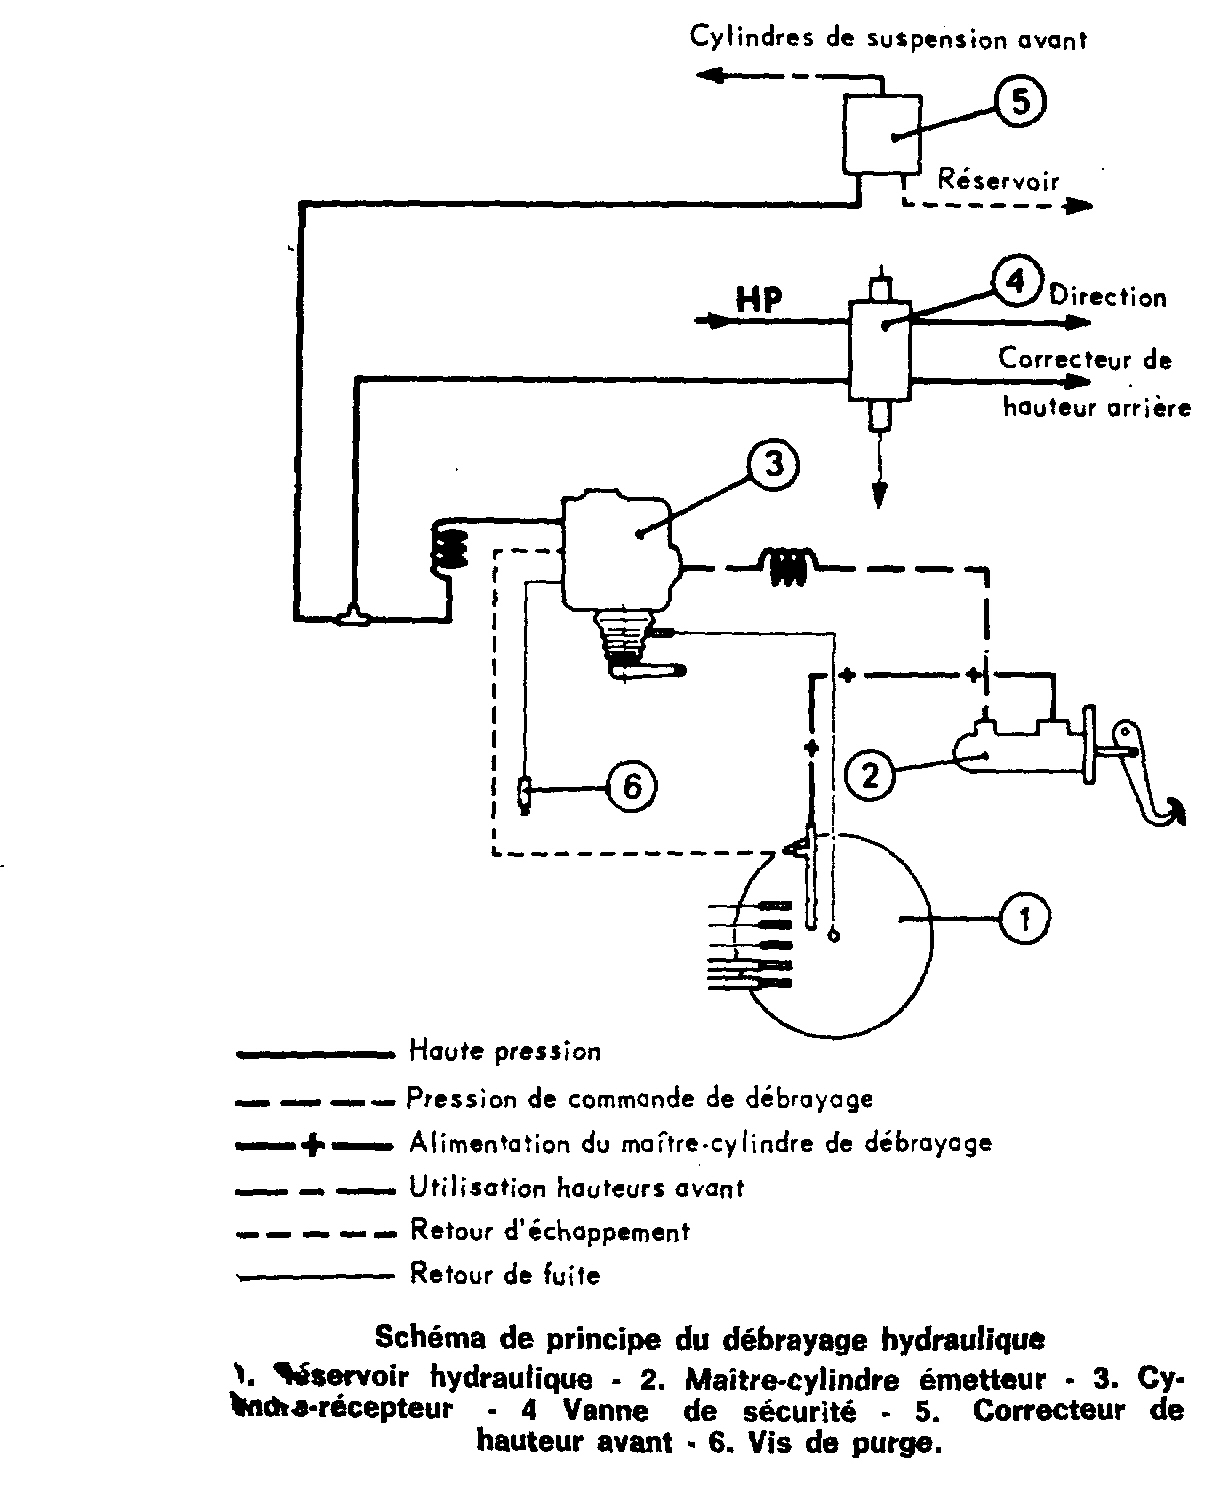 Master cylinder furthermore T34441p15 Goldoni 240 Universal additionally Jeep Cherokee Slave Cylinder Location further Tea20 restoration together with Product Information. on hydraulic clutch system diagram